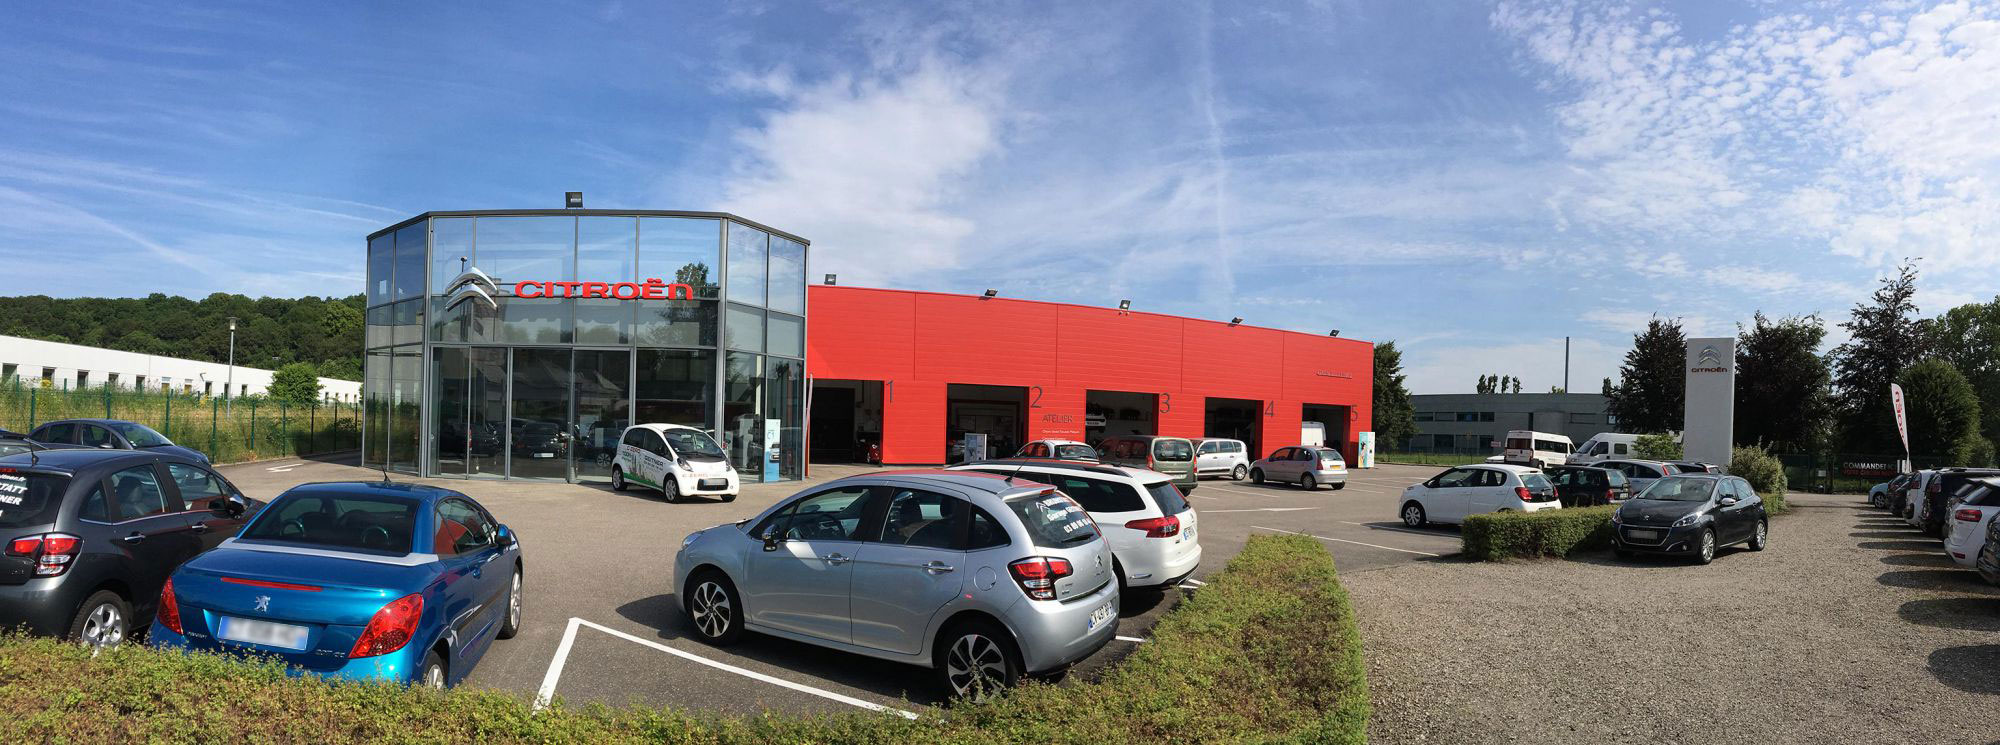 Point de vente Citroën et DS Automobiles à Brunstatt